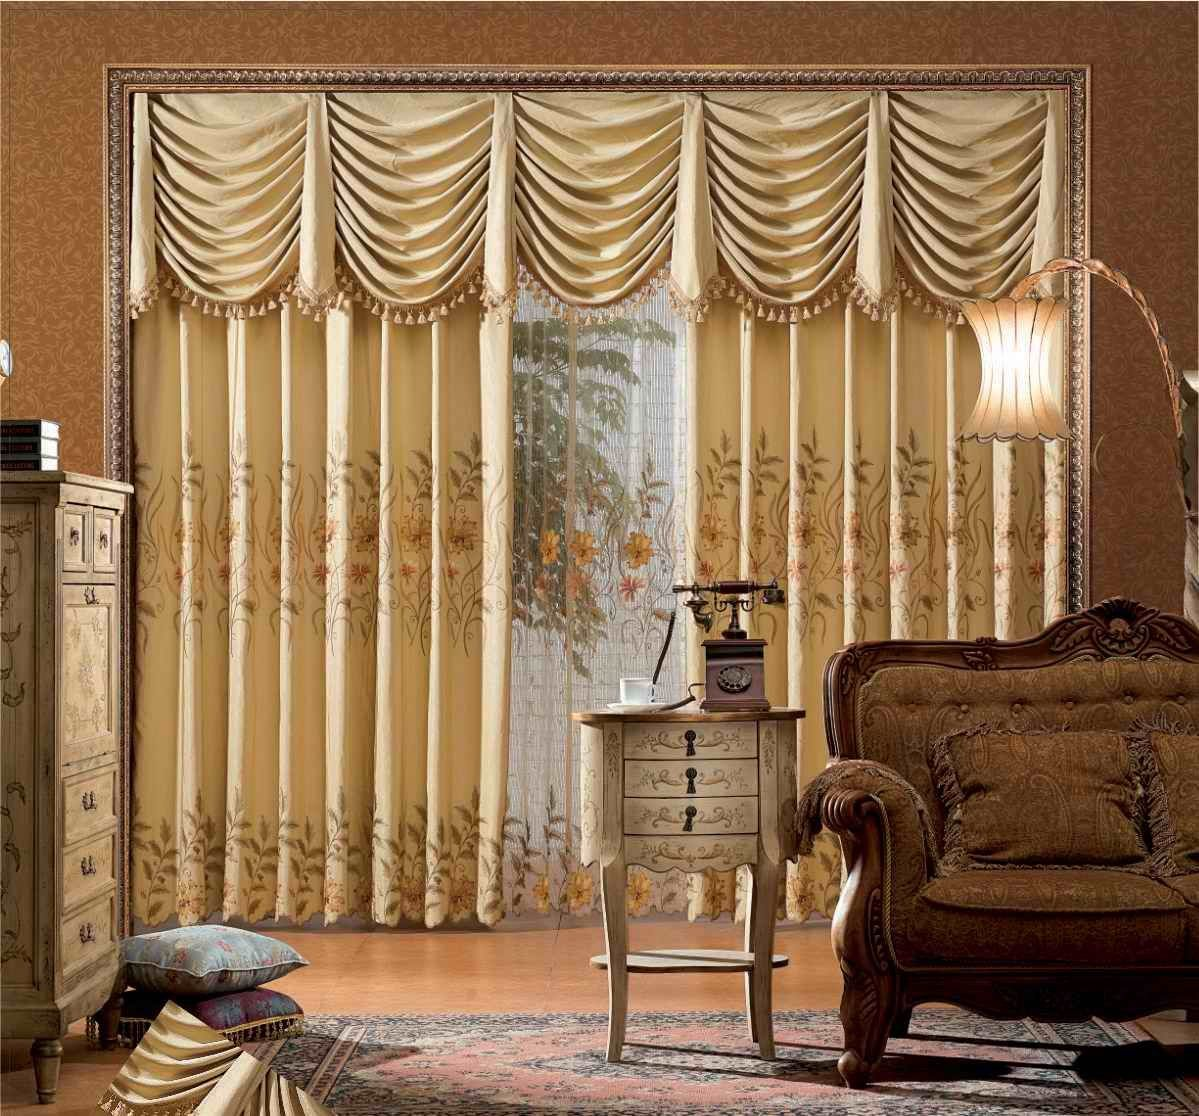 Living Room Ideas For Living Room Curtains 1000 images about curtains for living room on pinterest drapes ideas and small curtains